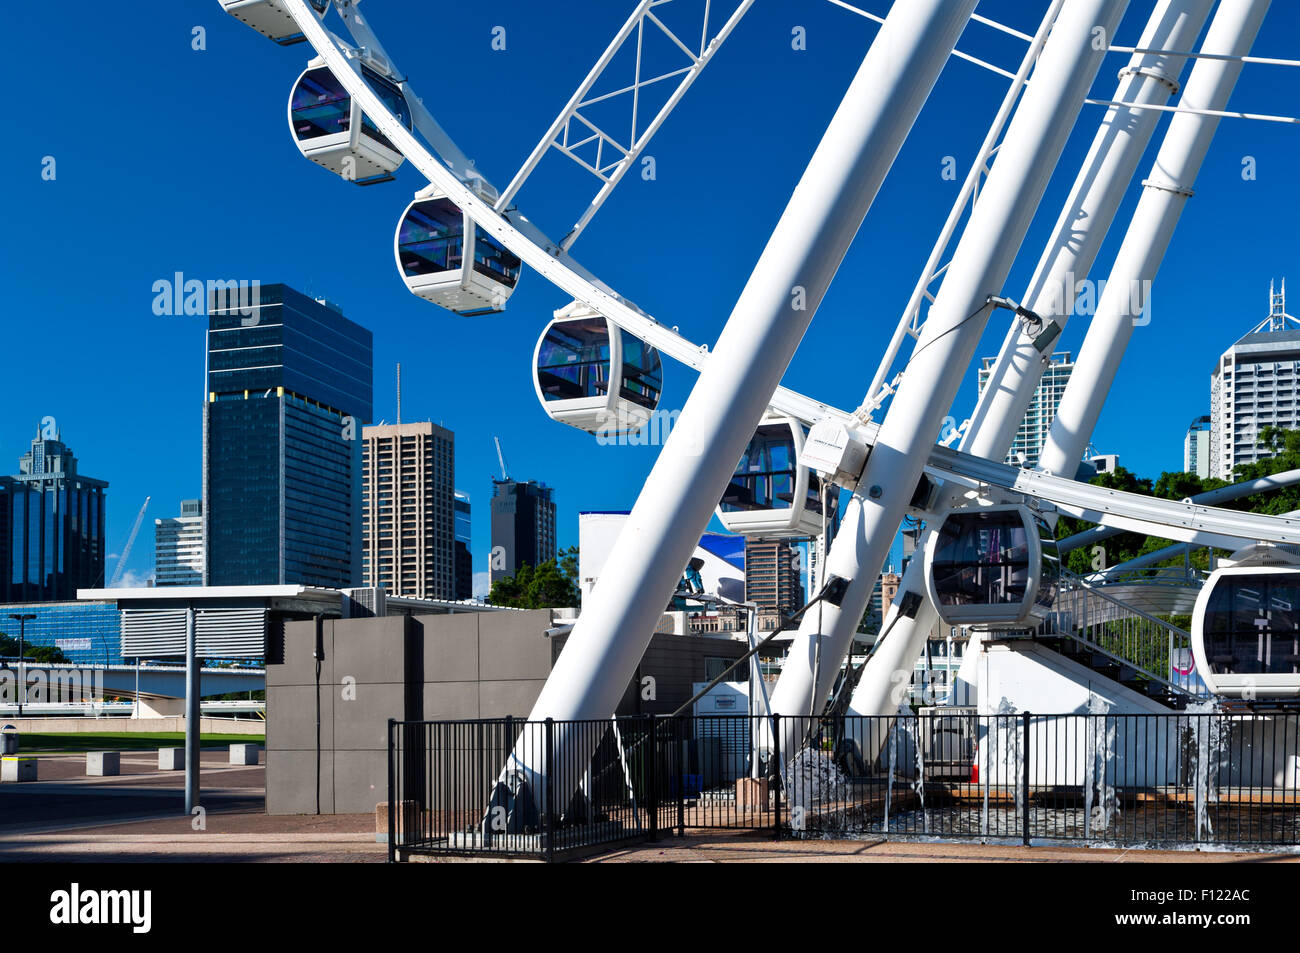 The Wheel of Brisbane in front of the skyline. - Stock Image